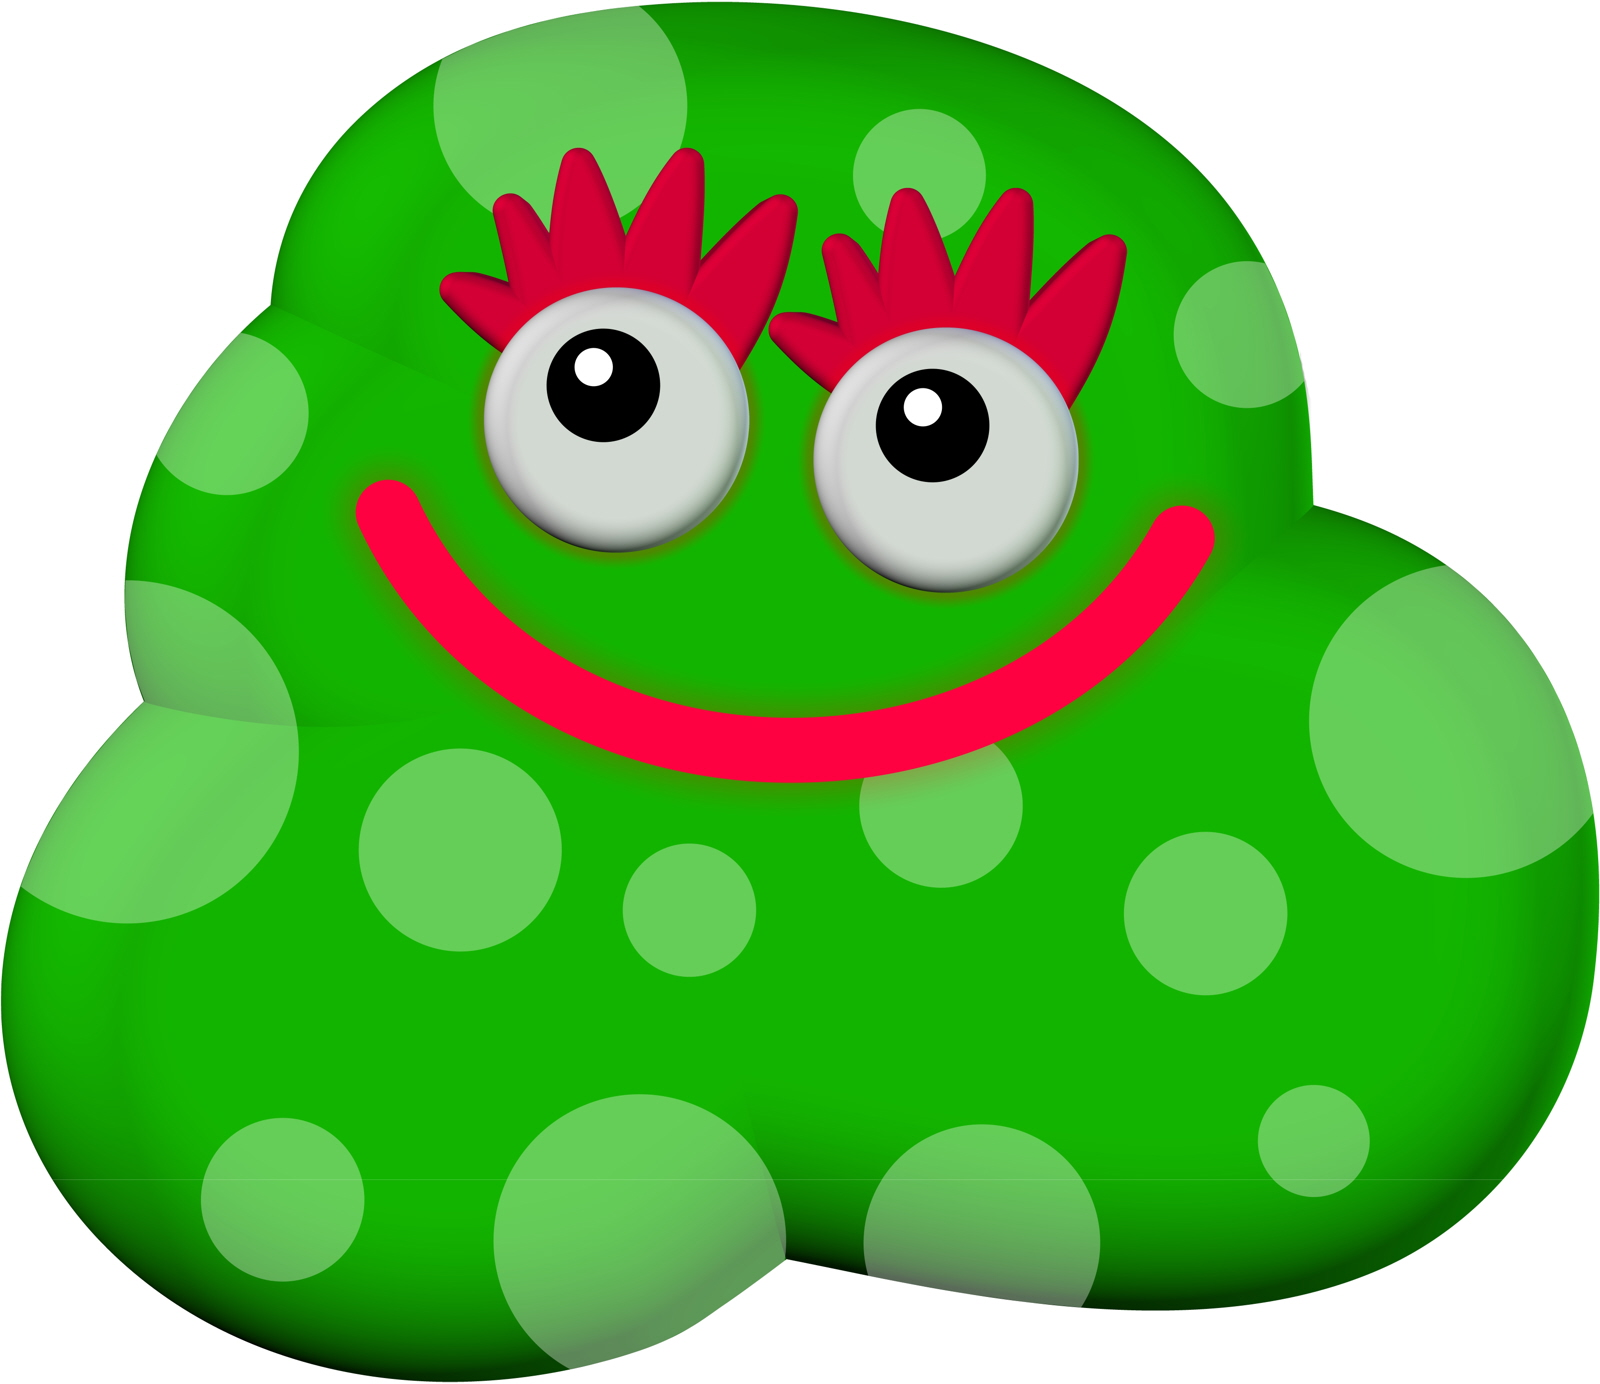 Germ clipart. Free stock photo green